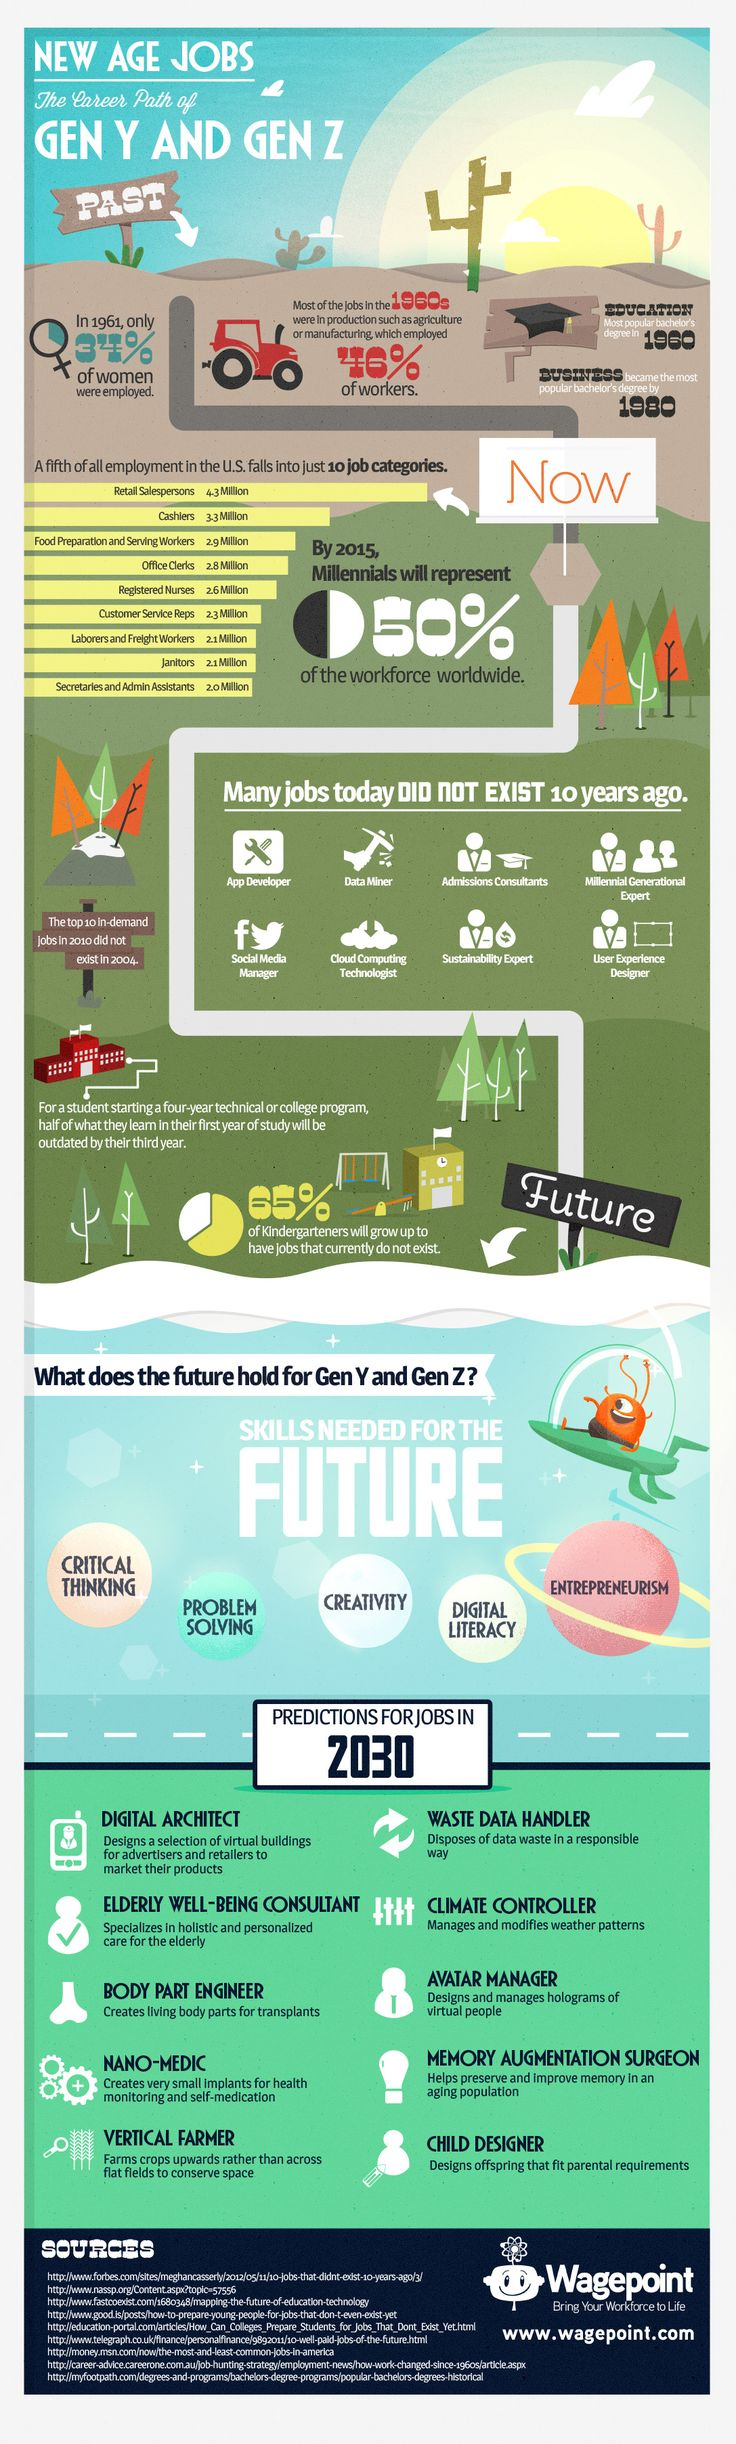 17 best images about generation y future of work infographics on purpose to inform of the current and future employment for generation y and z audience generation y and z as well as people not in these generations